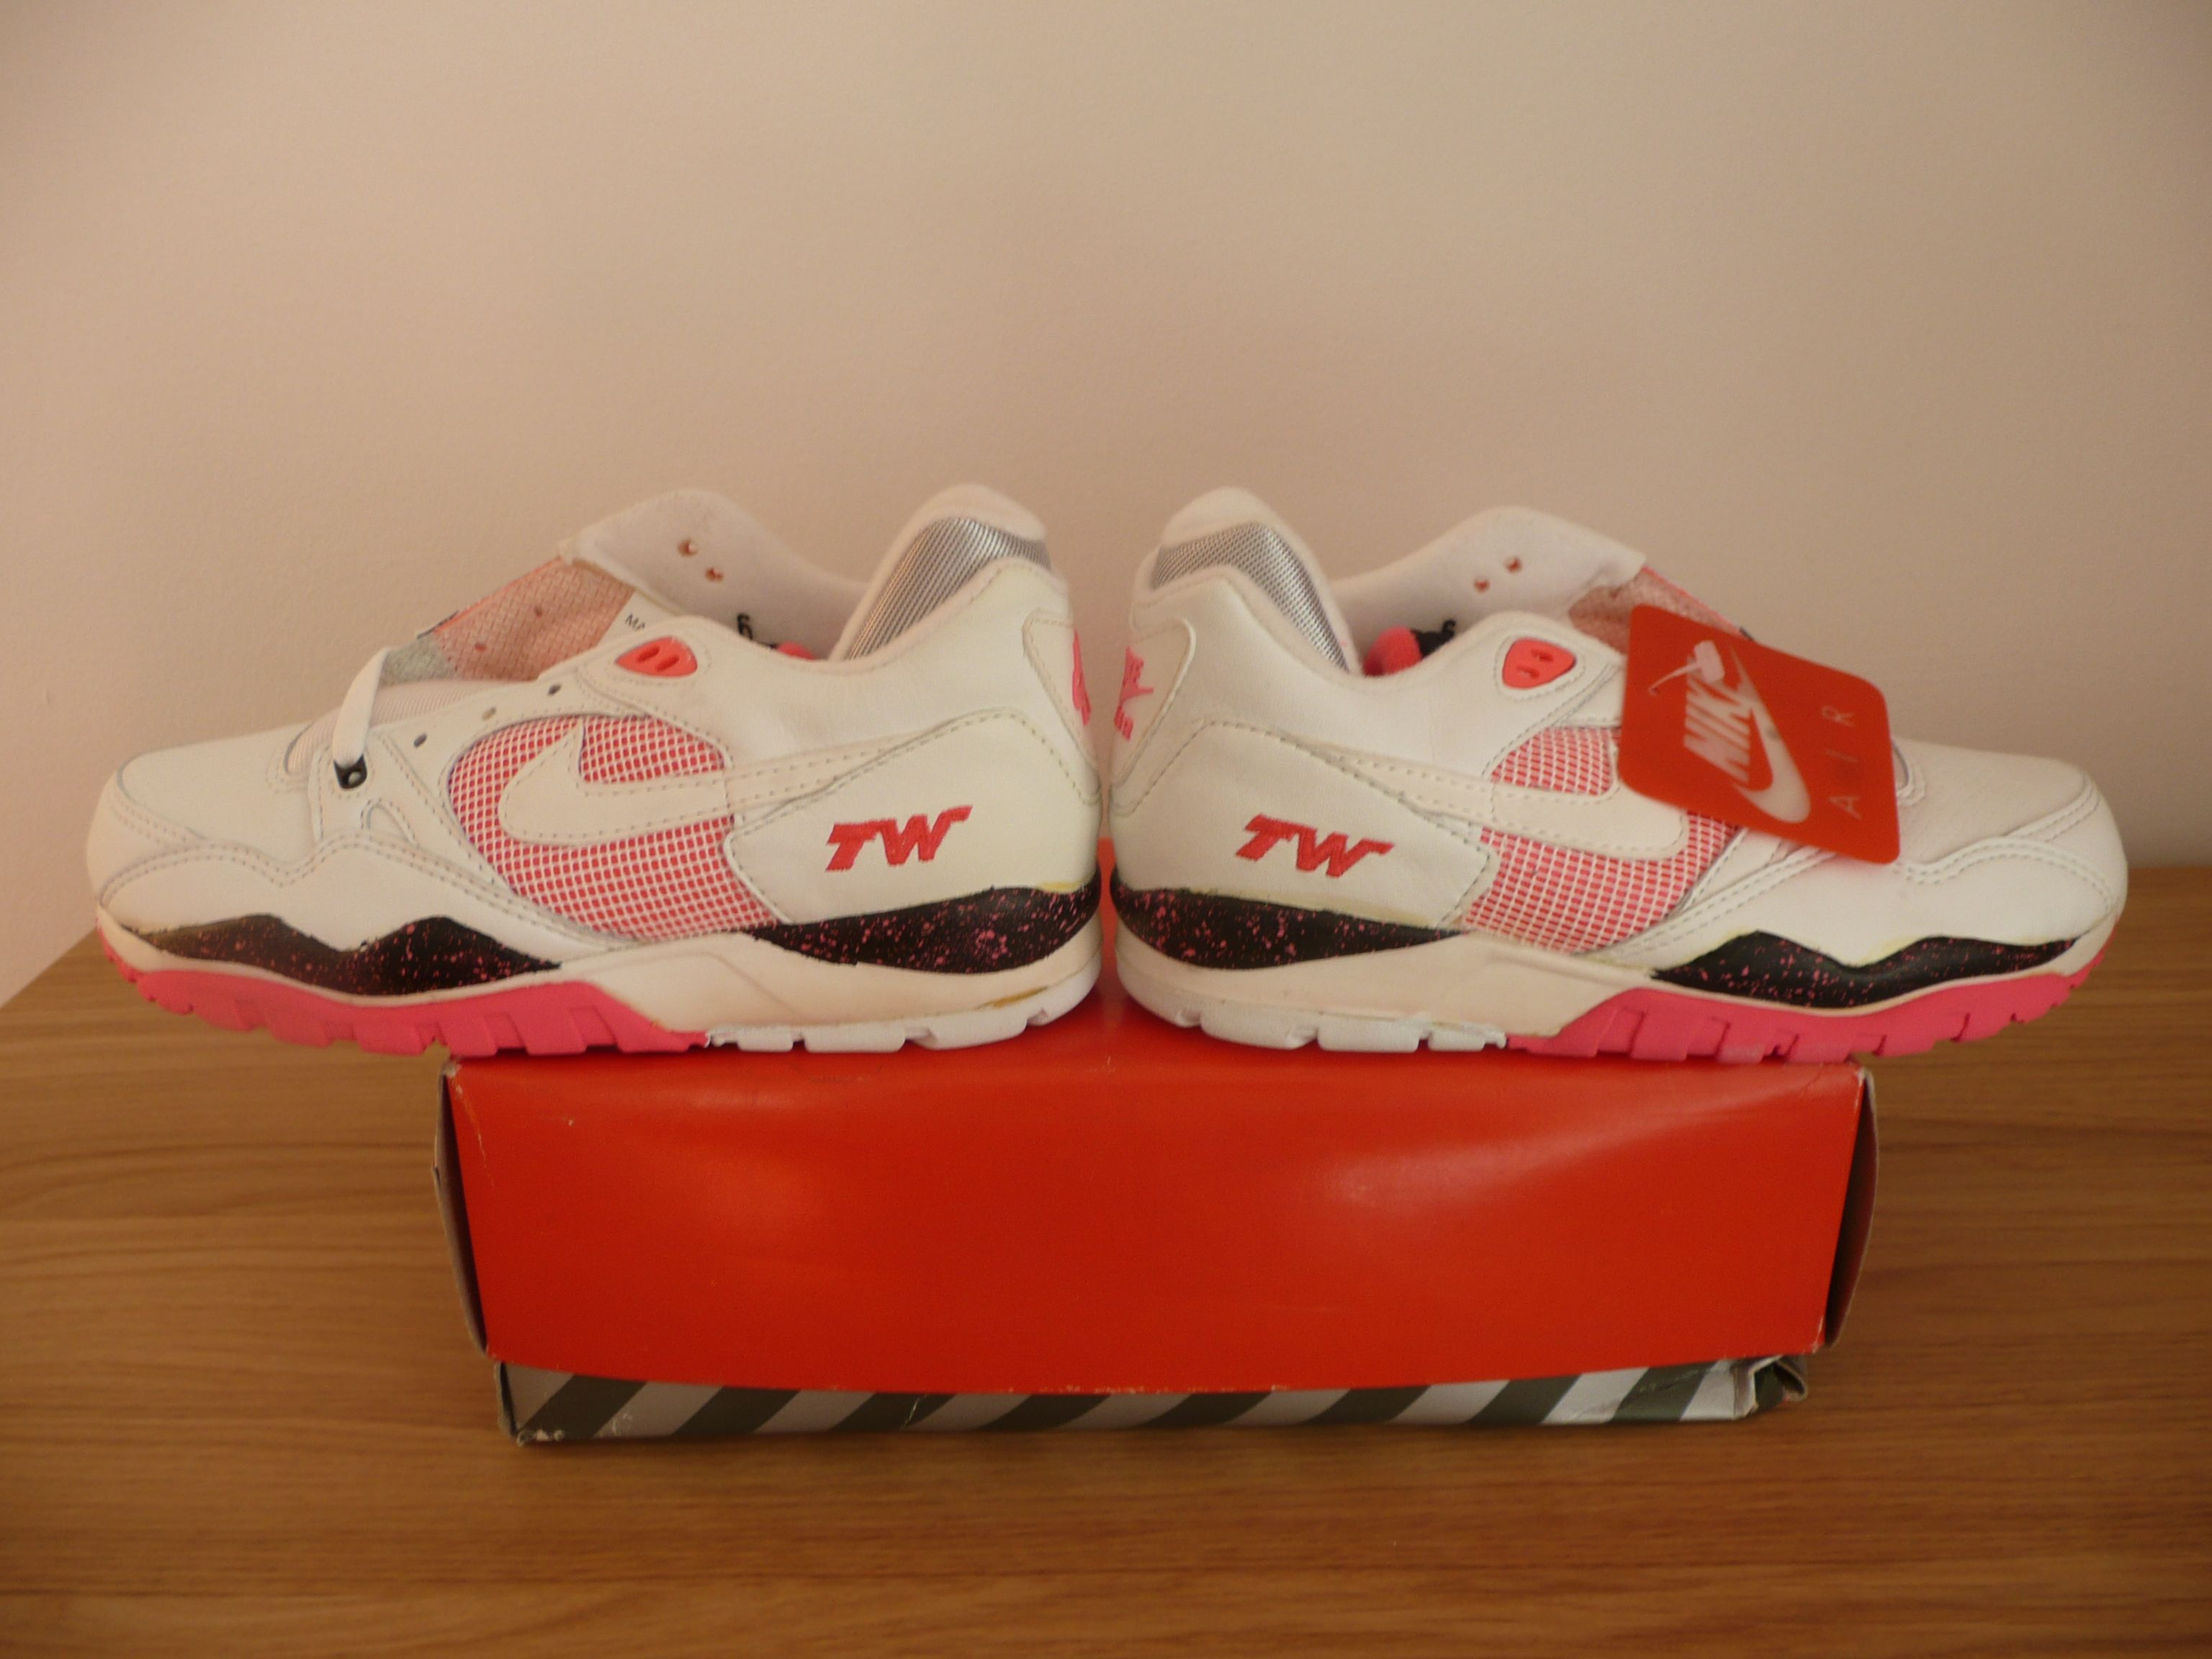 wholesale dealer 23d4b d23d5 Nike Air Trainer TW Lite - These were the first brand name trainers I  owned. Loved them!